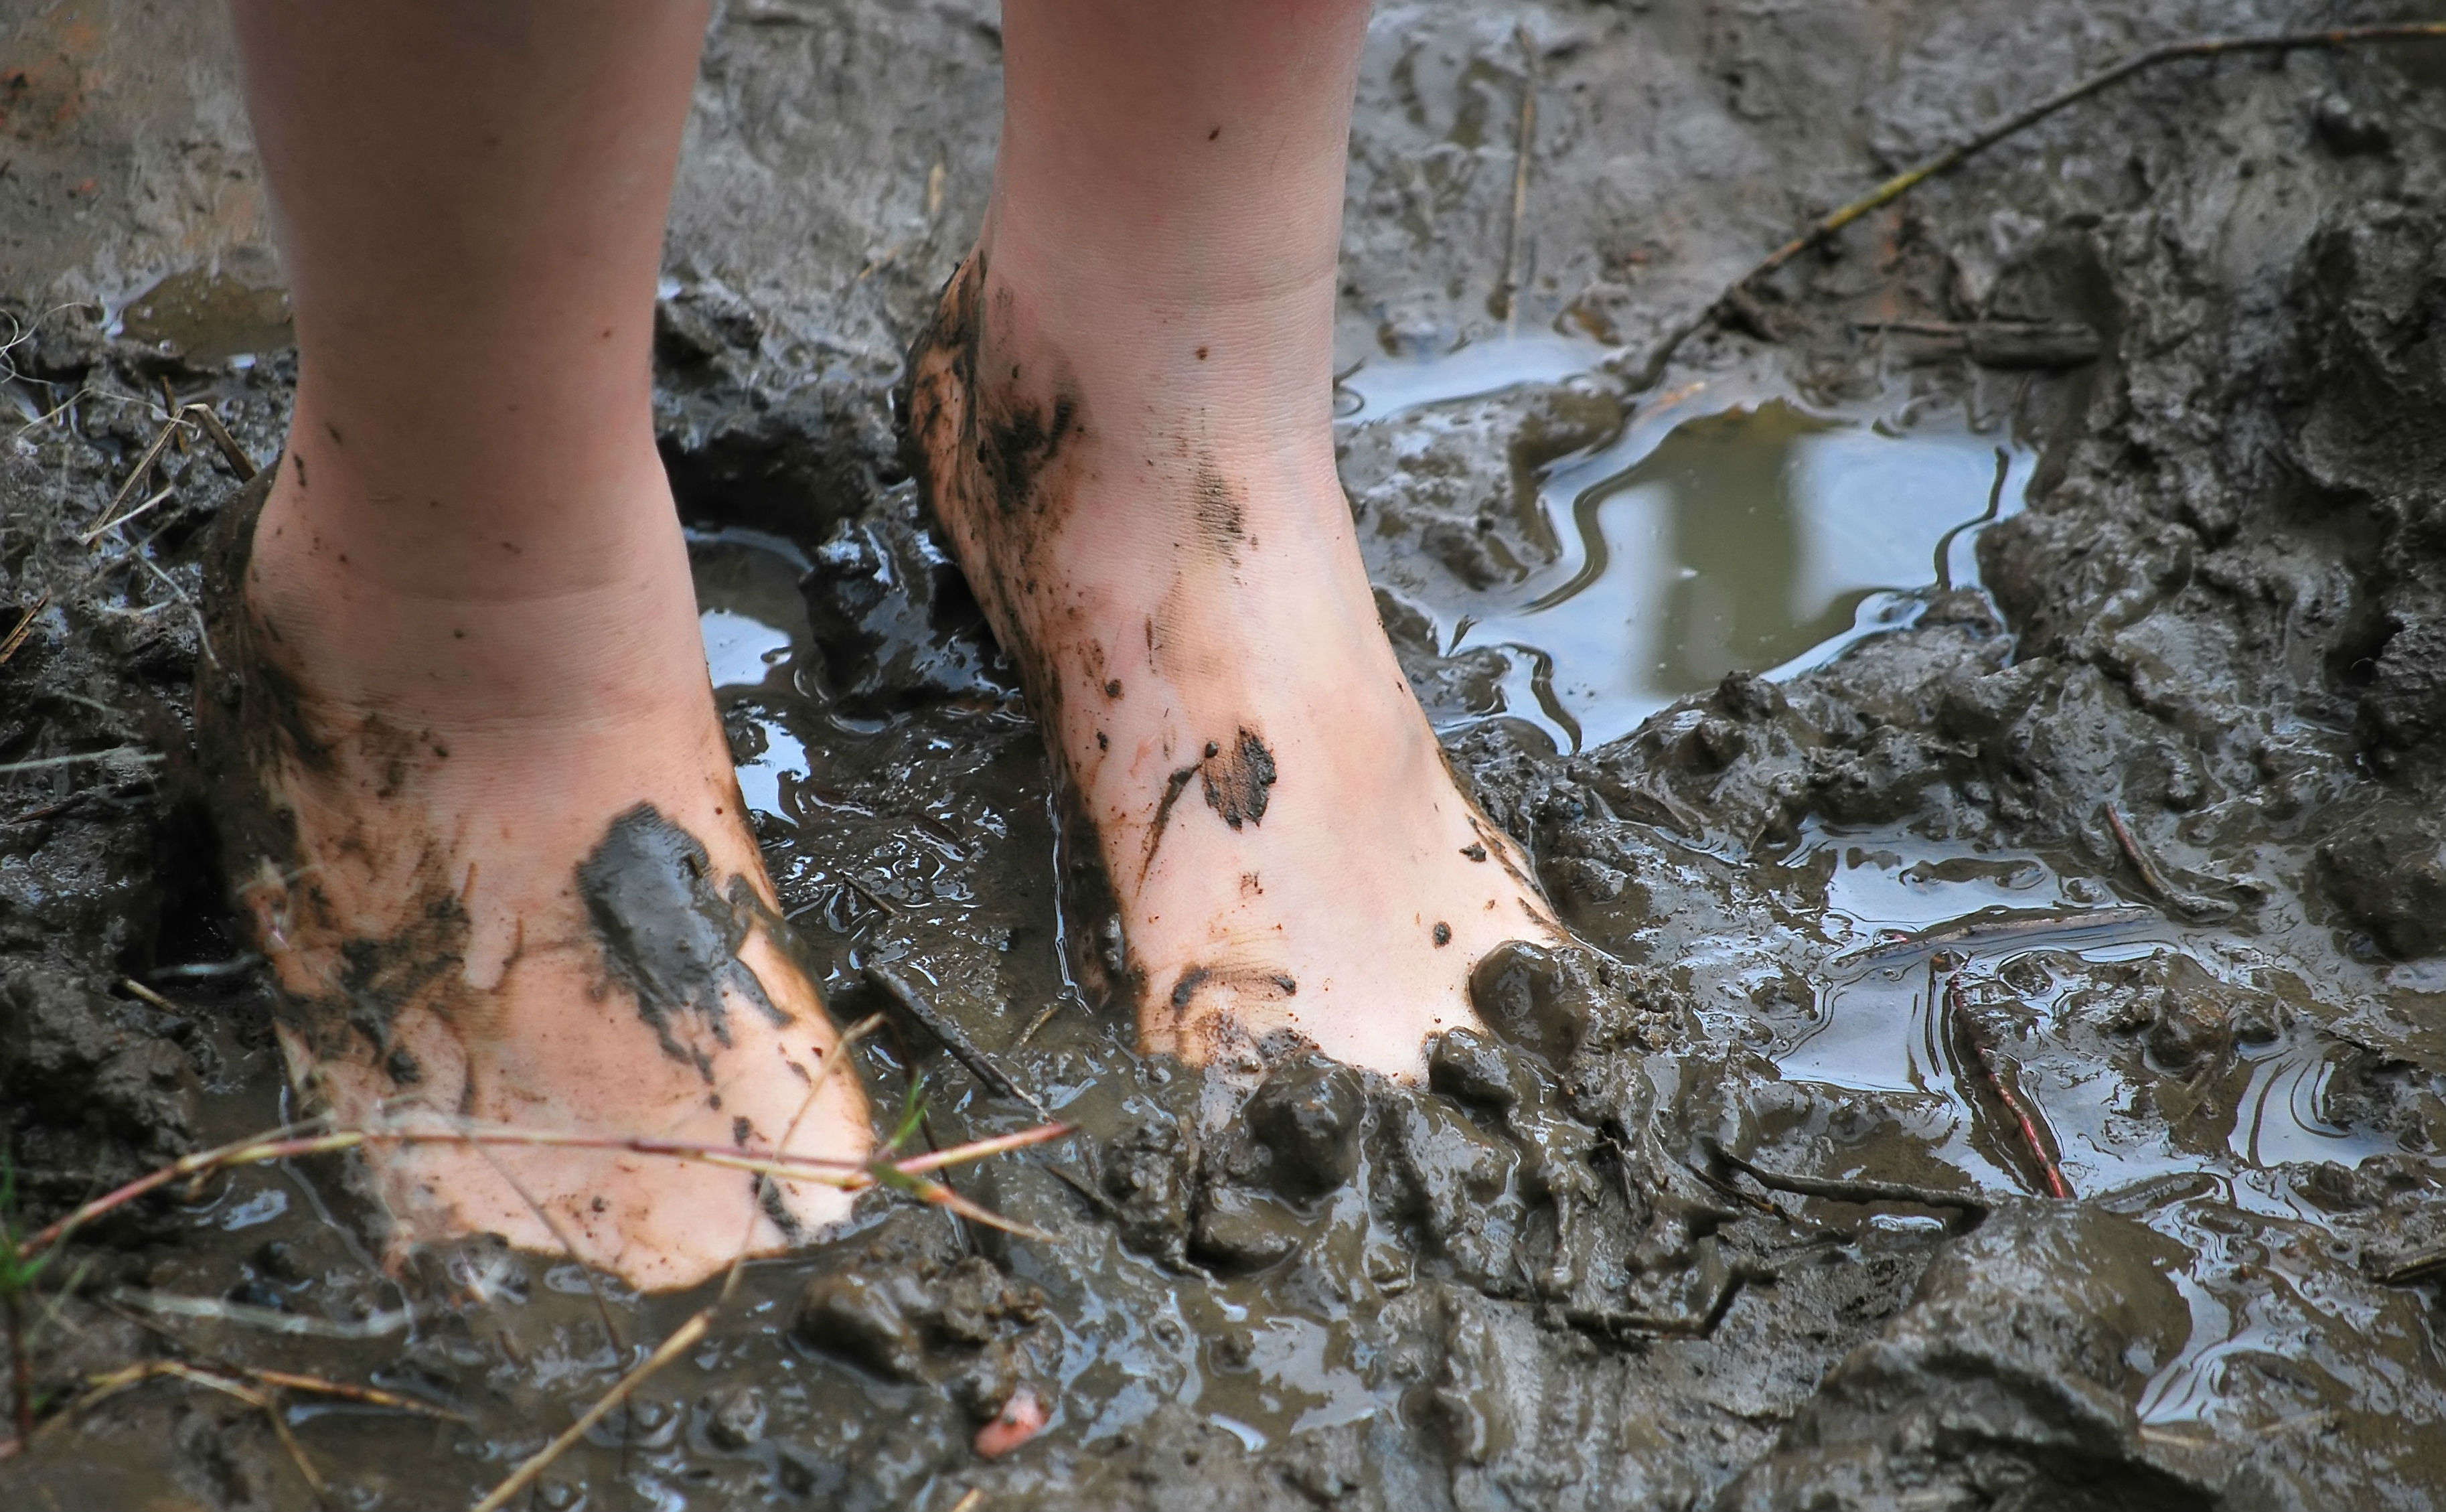 Get ready to play dirty at Mud Bash in Mumbai this weekend